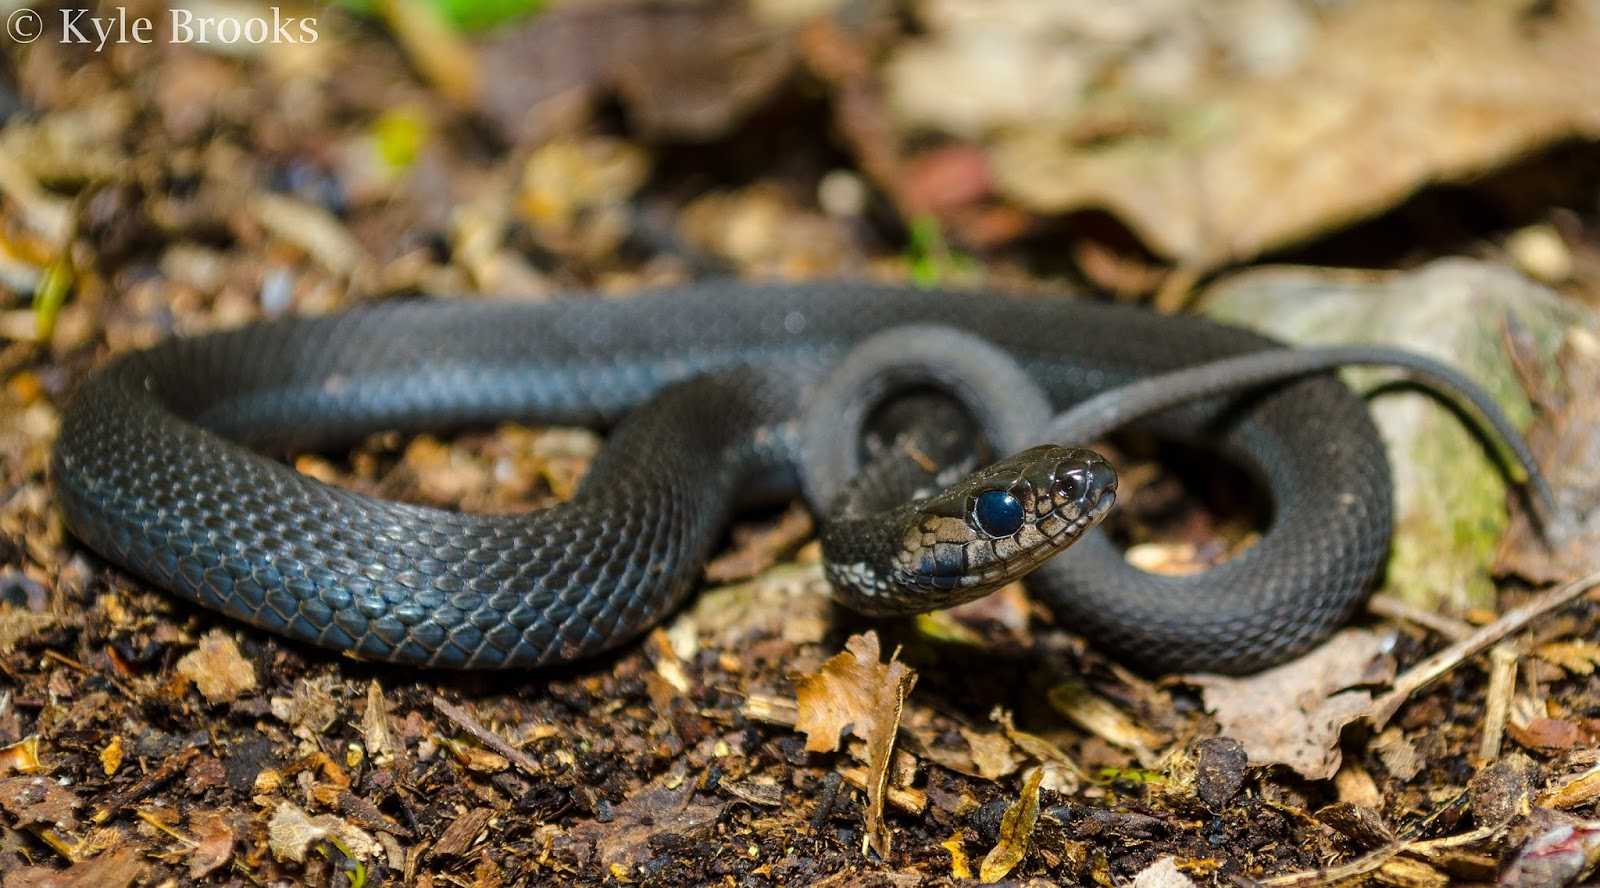 Melanistic Thamnophis sirtalis